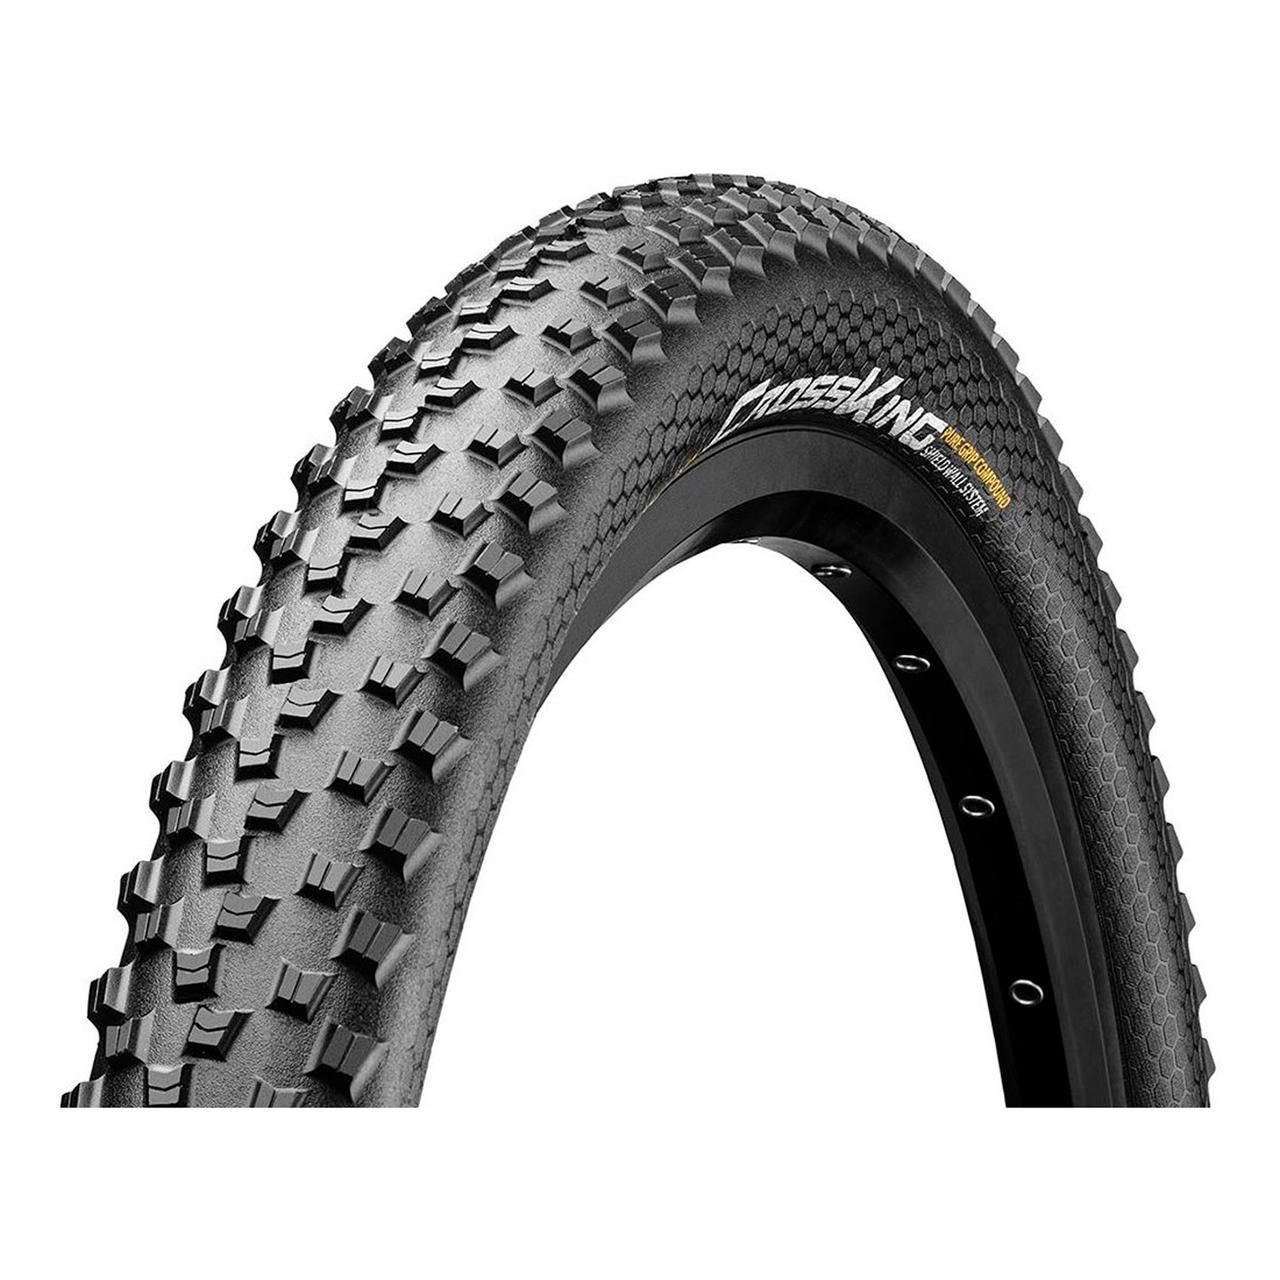 "Покрышка Continental Cross-King 2.0, 26""x2.00, 50-559, Wire, PureGrip, Performance, Skin, 620гр., черный"